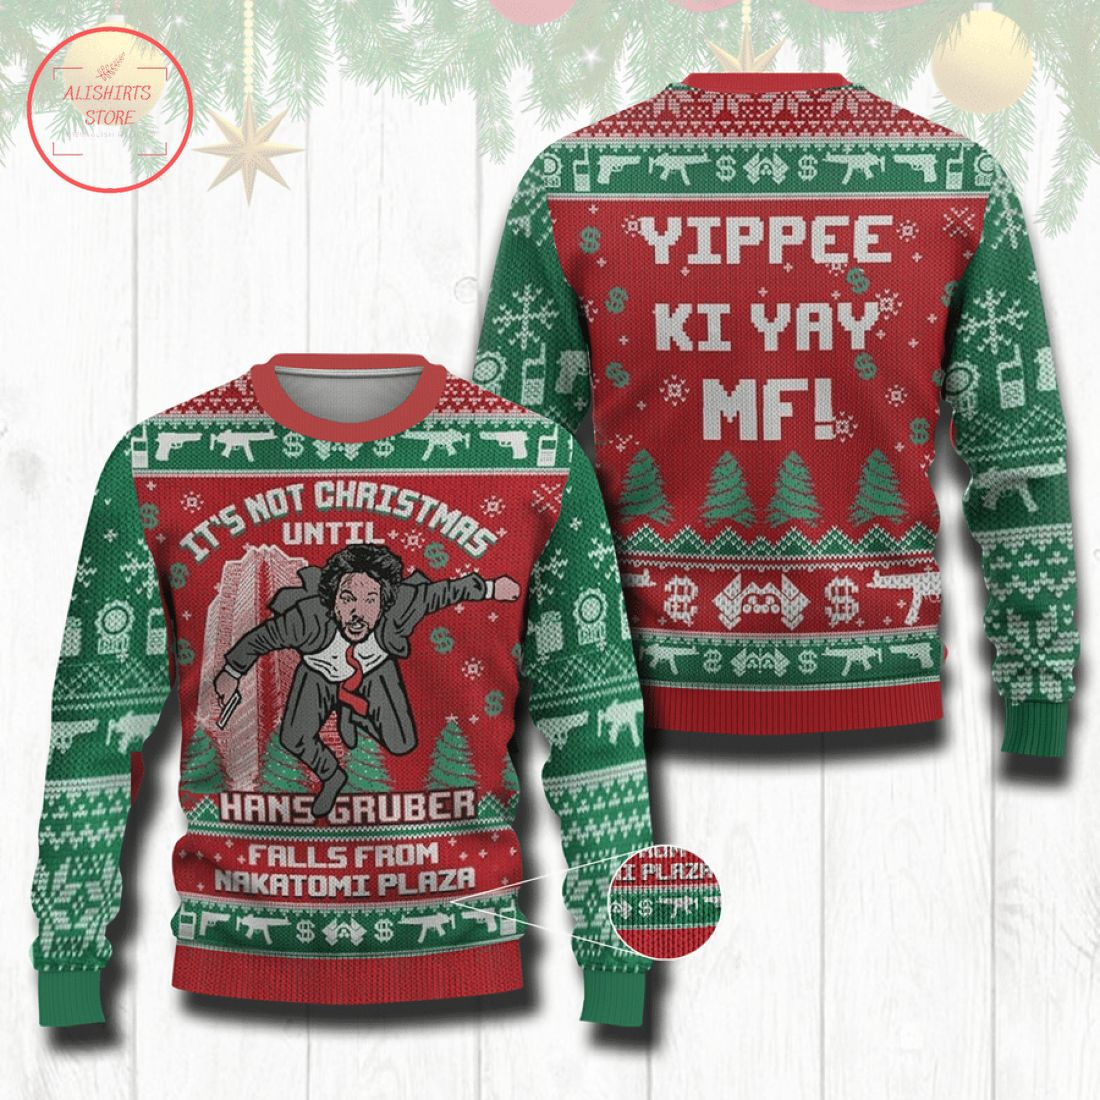 It's Not Christmas Until Hans Gruber Ugly Sweater